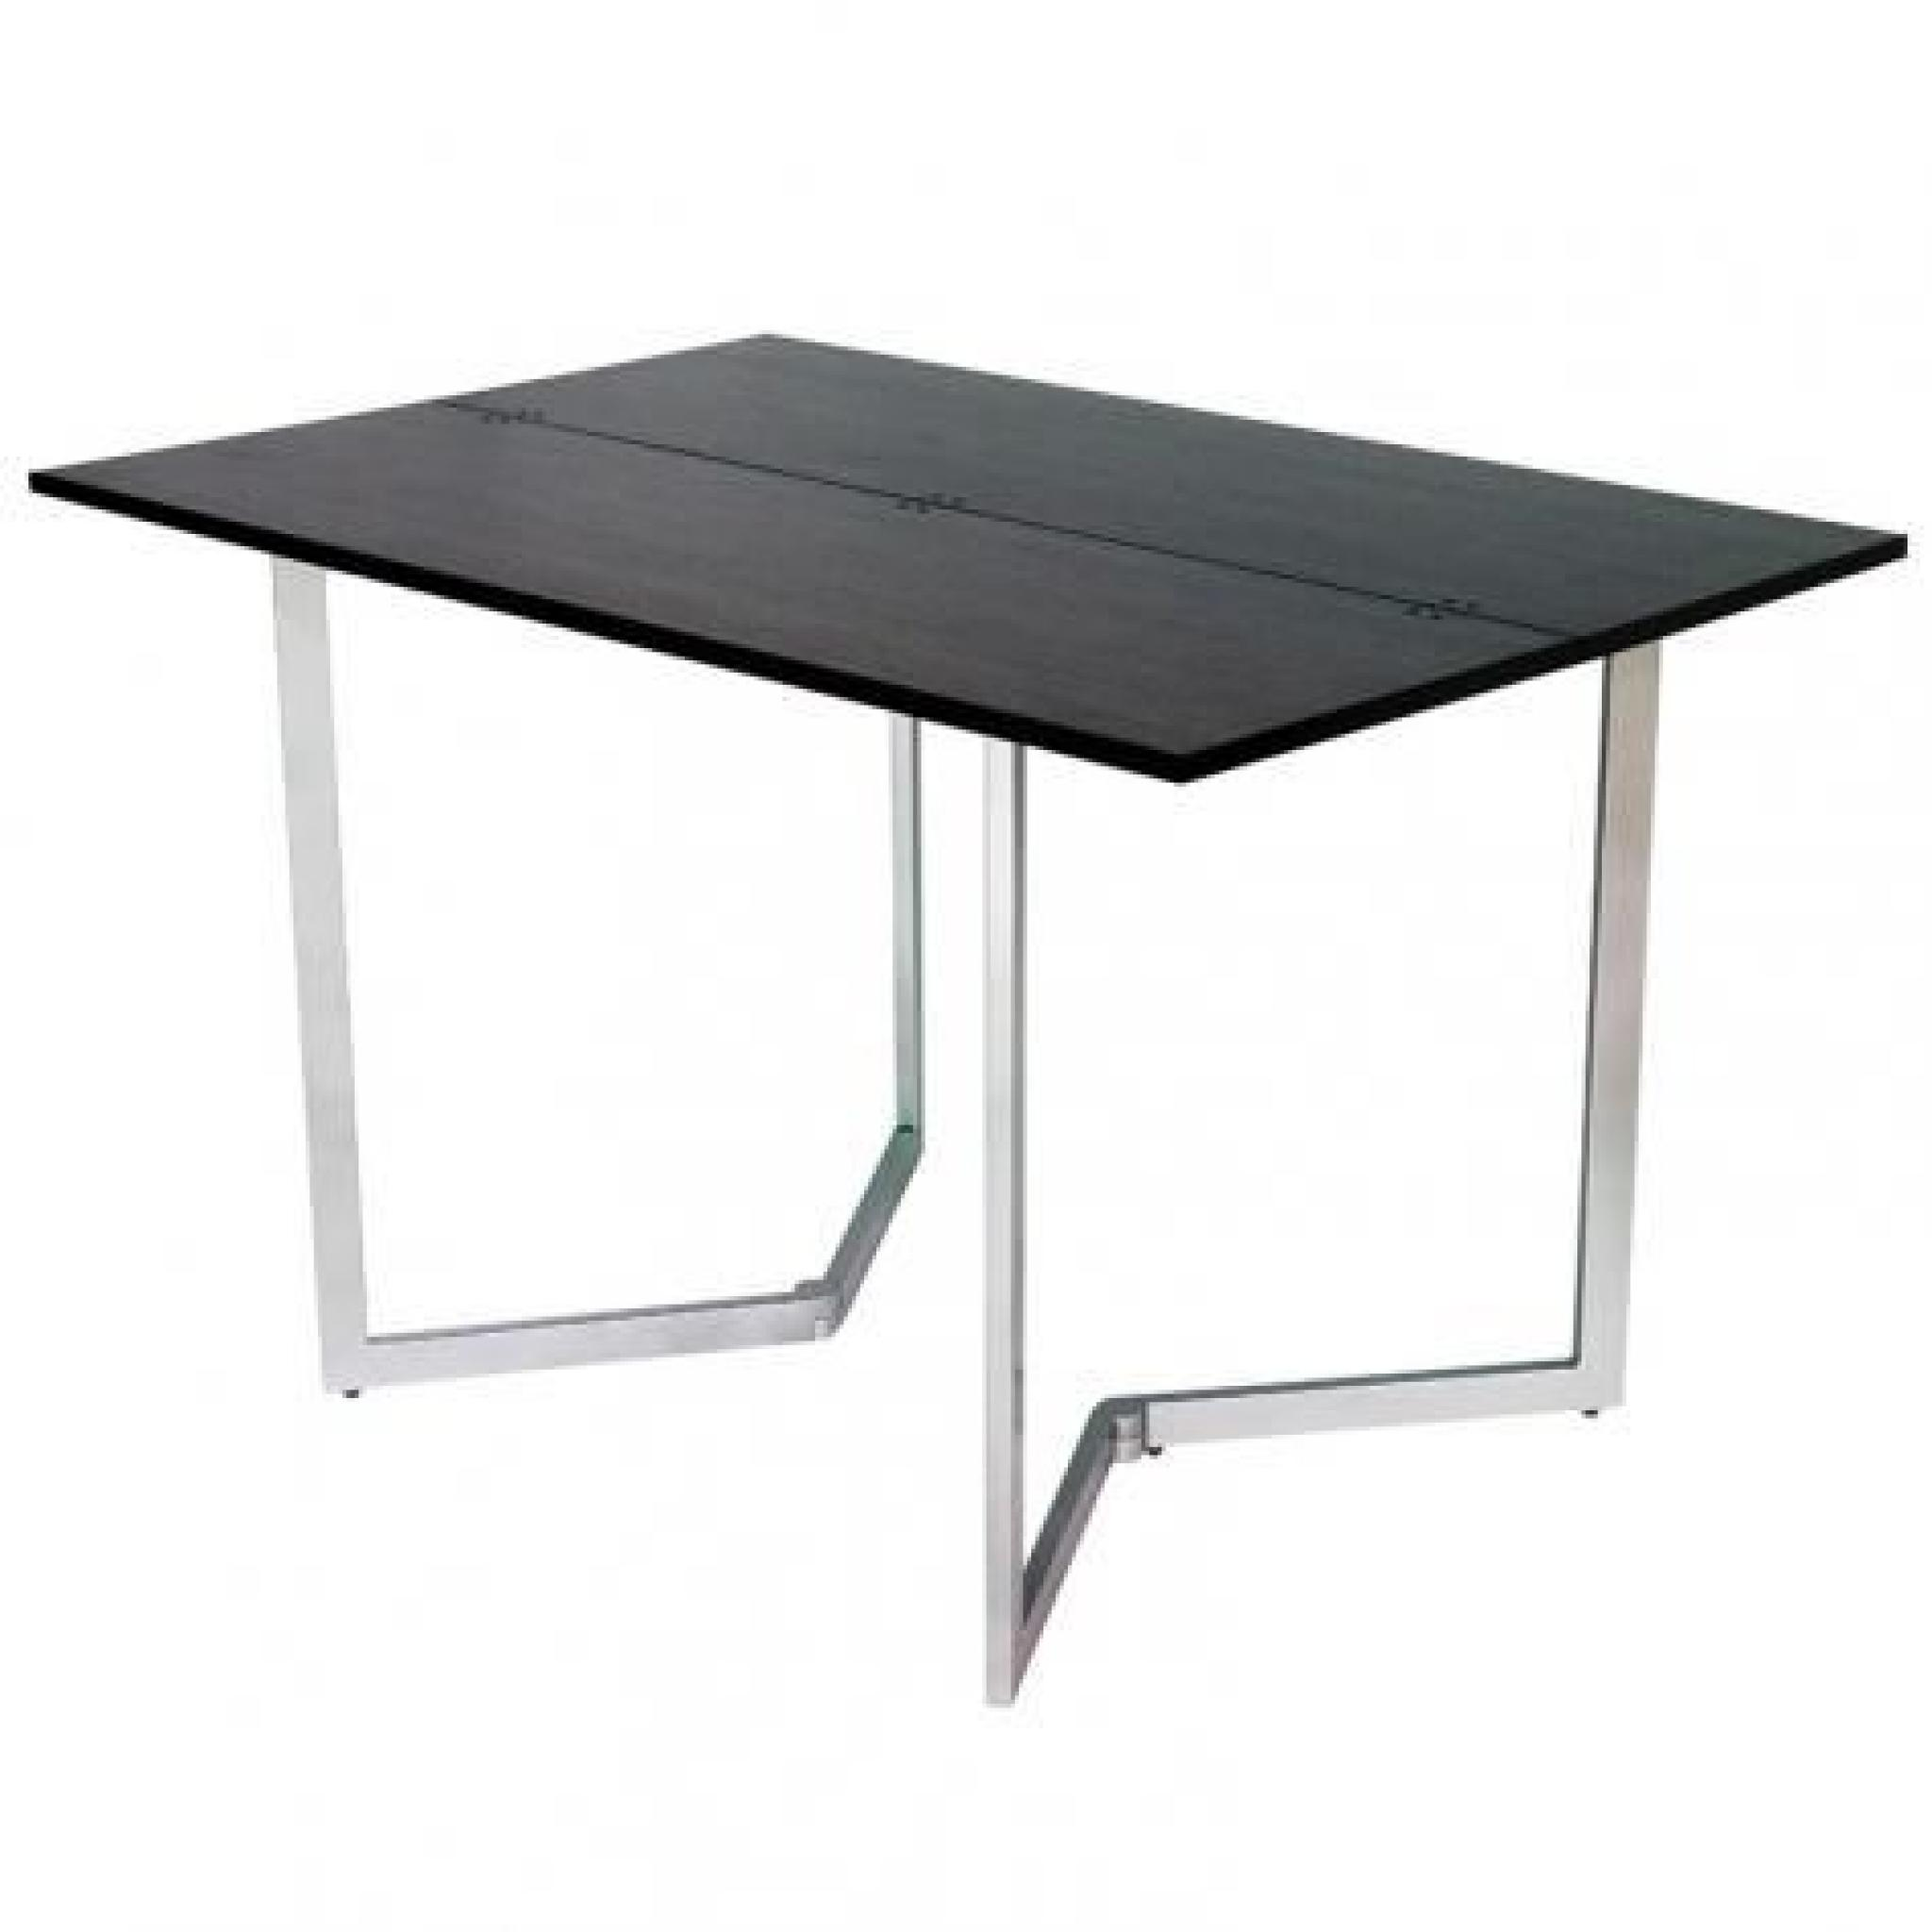 Table console extensible weng talia achat vente for Table sejour extensible design